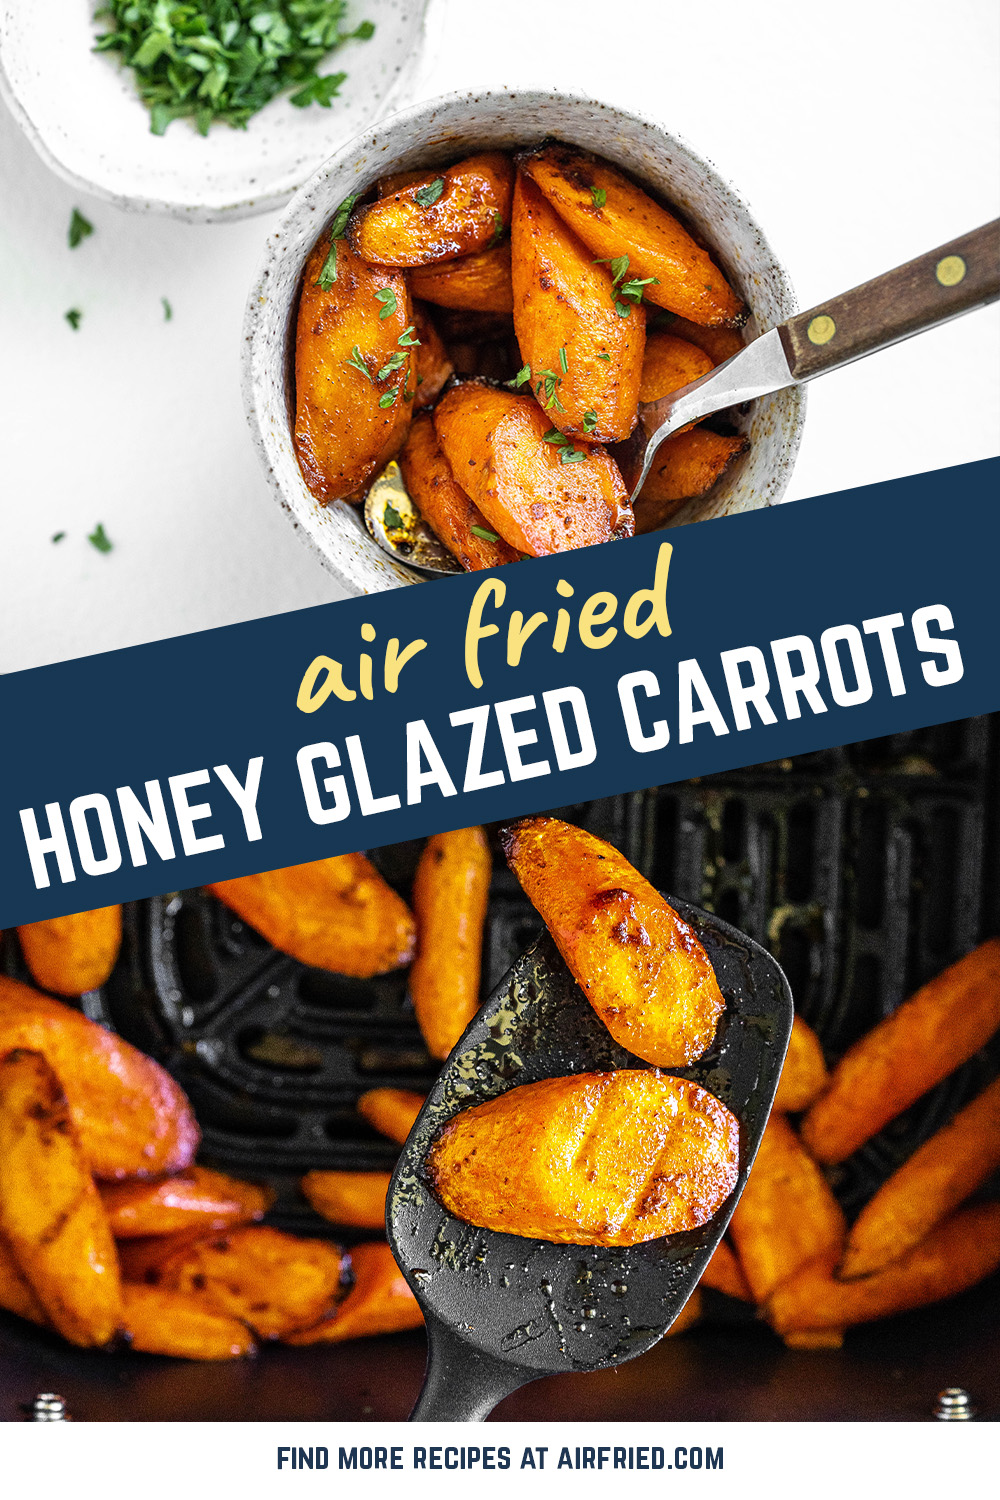 We are loving these air fryer carrots with a unique spiced hone glaze coating all over them!